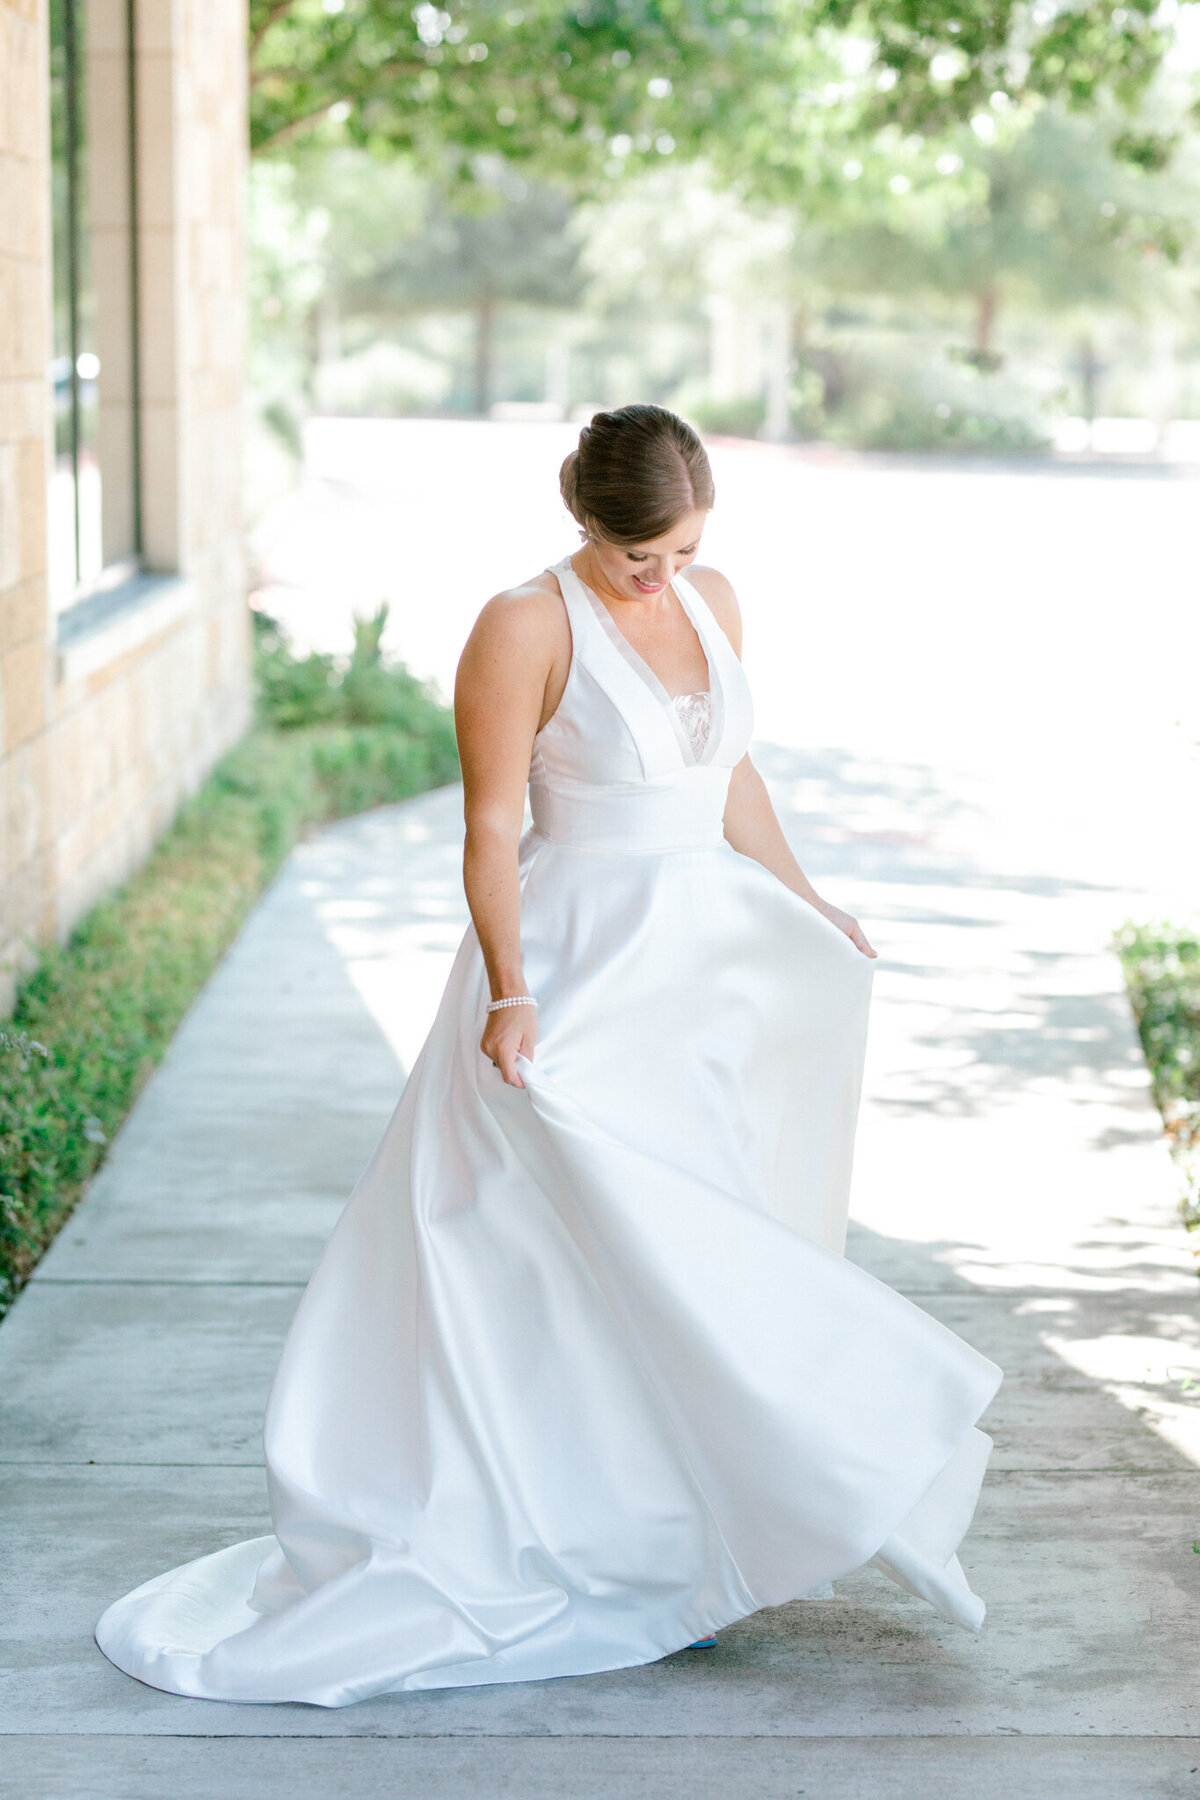 Kaylee & Michael's Wedding at Watermark Community Church | Dallas Wedding Photographer | Sami Kathryn Photography-60